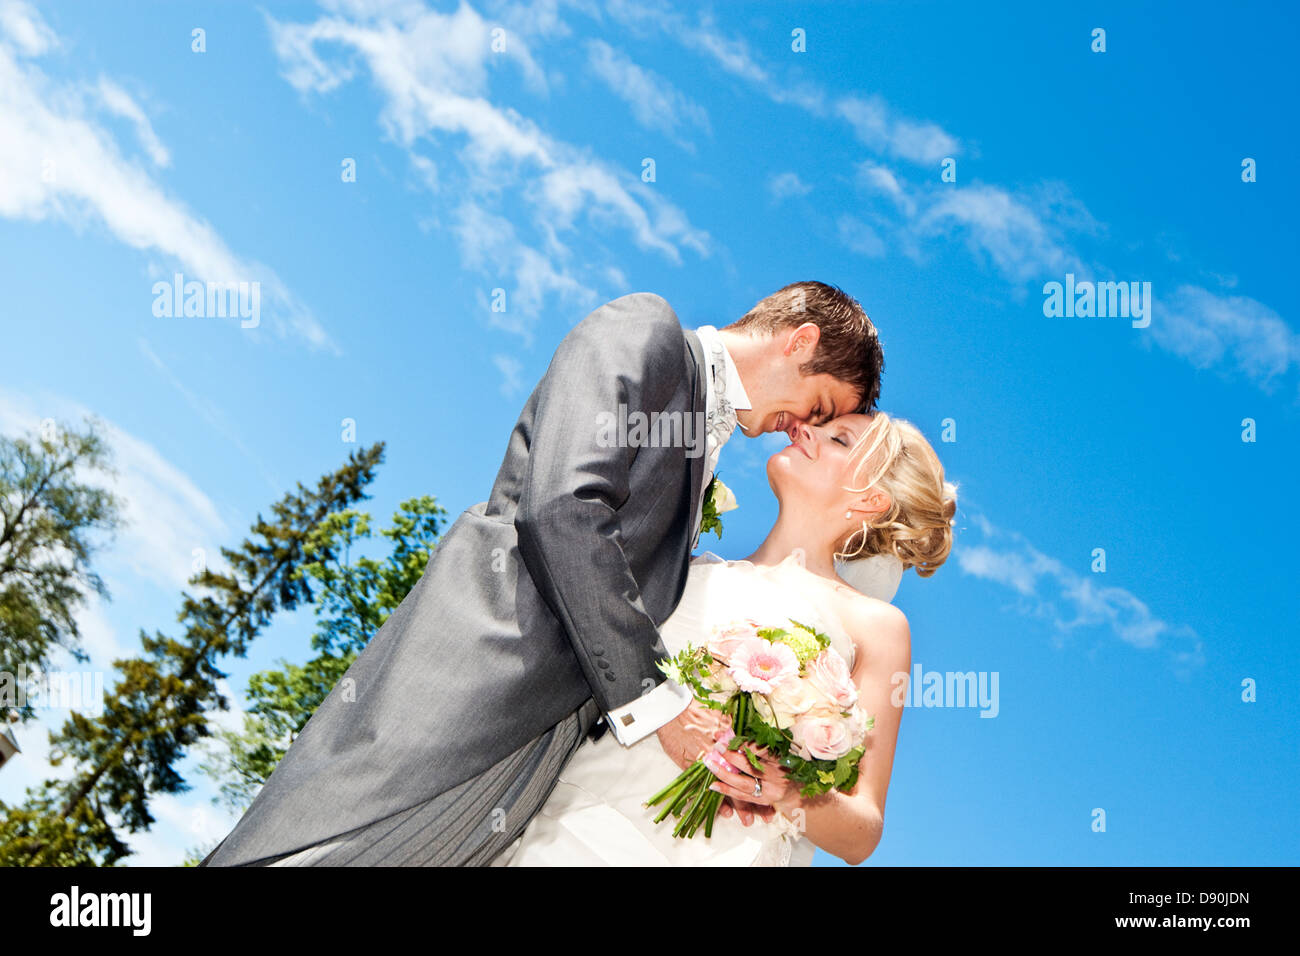 Low-angle view of groom and bride embracing outdoors Stock Photo